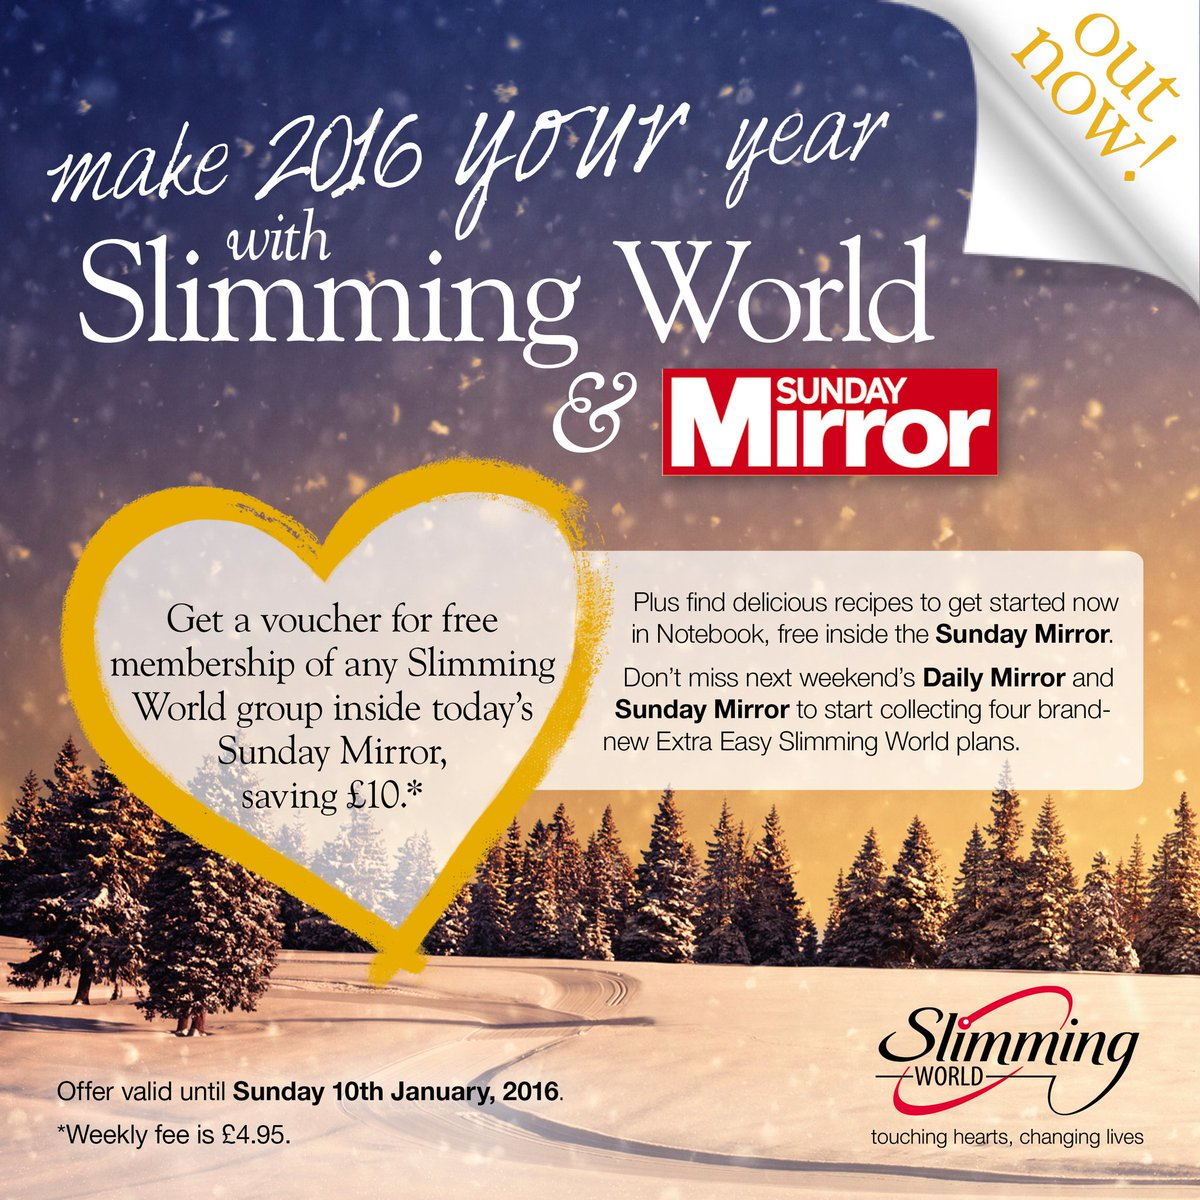 Slimming world on twitter free slimmingworld membership Slimming world my account